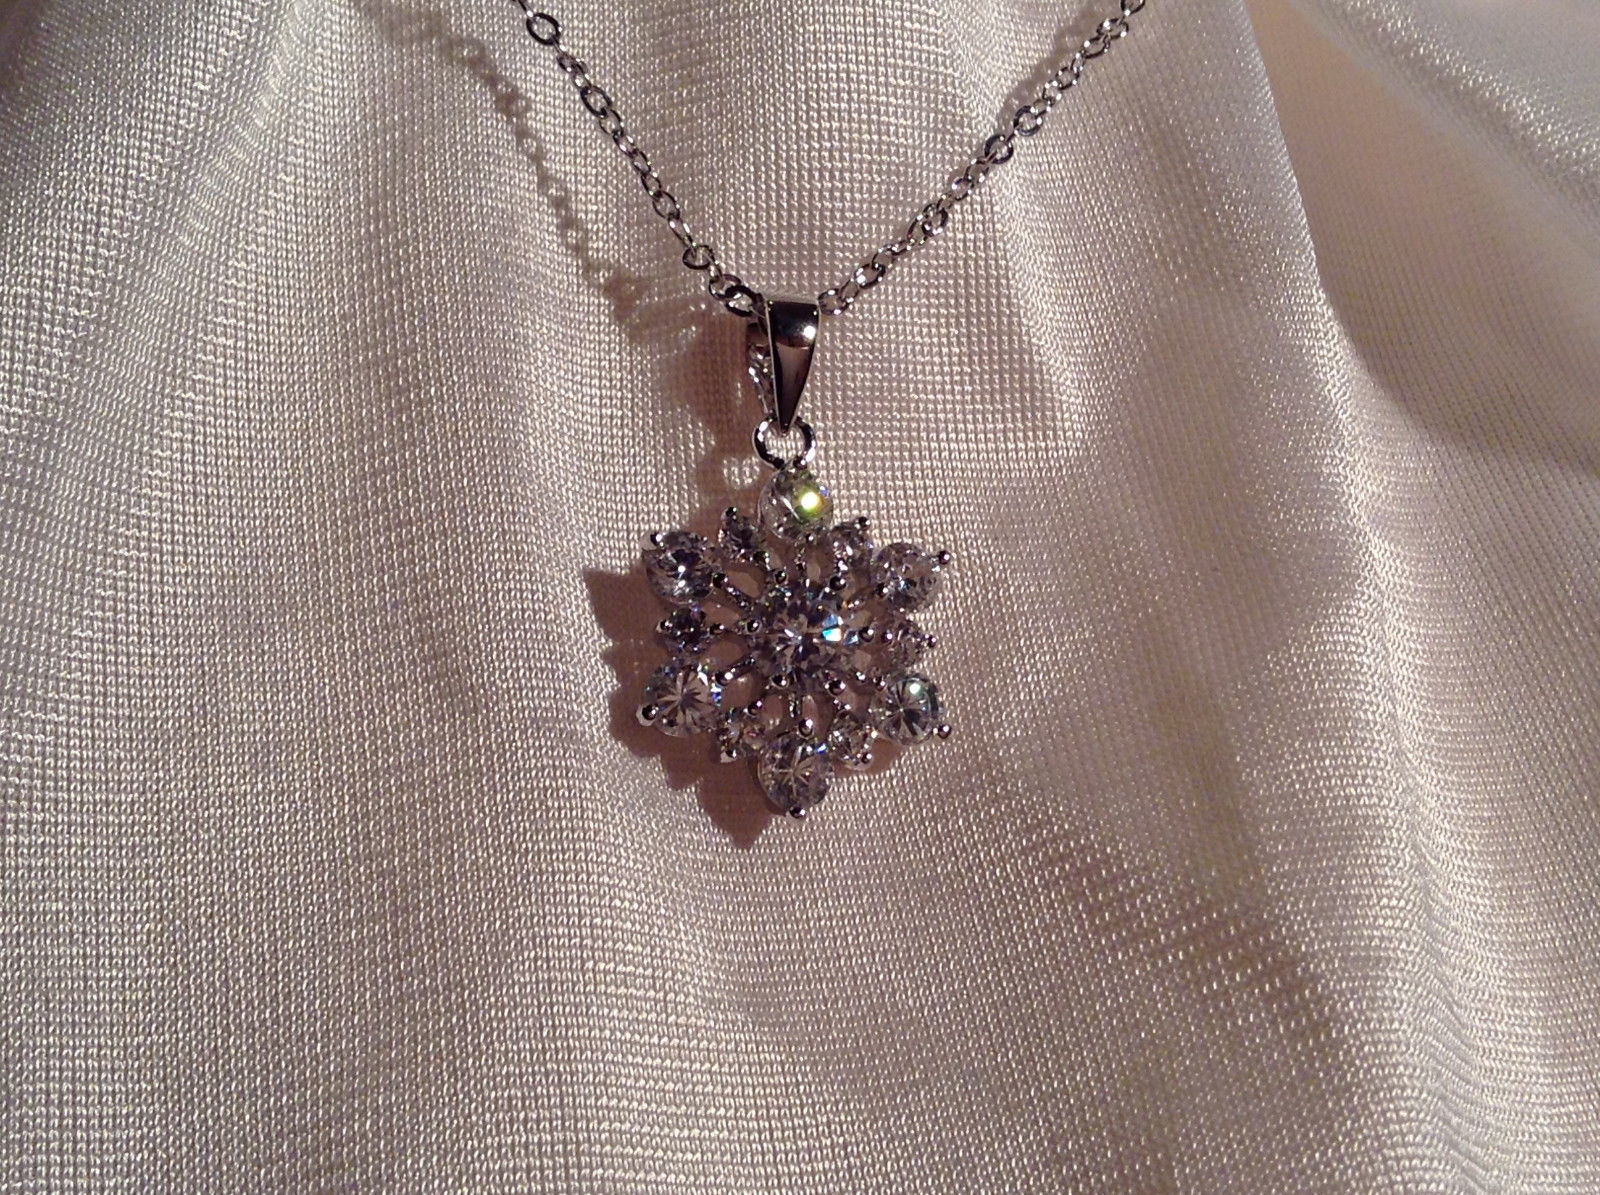 dCZ Stone Snowflake Pendant Silver Necklace Lobster Clasp Closure